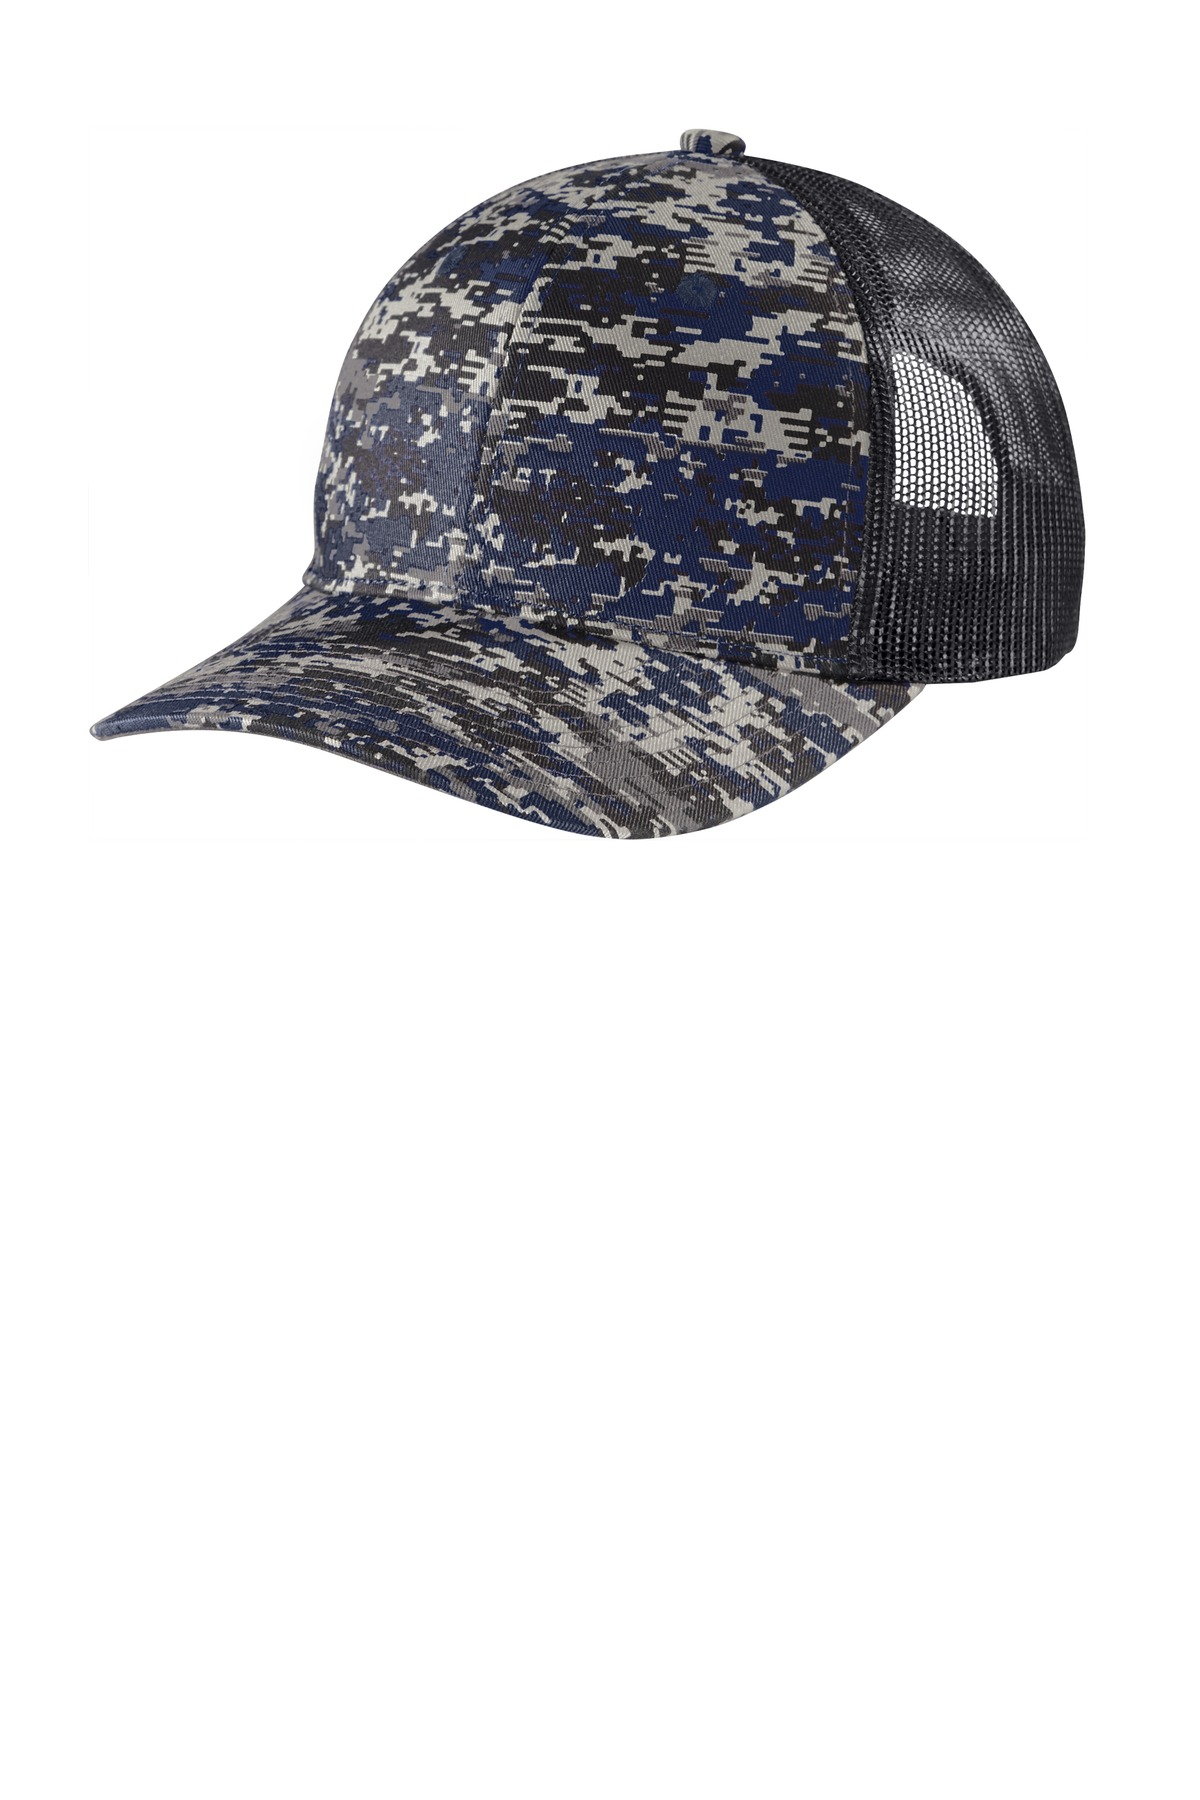 Port Authority  ®  Digi Camo Snapback Trucker Cap C114 - Rich Navy Digi/ Grey Steel